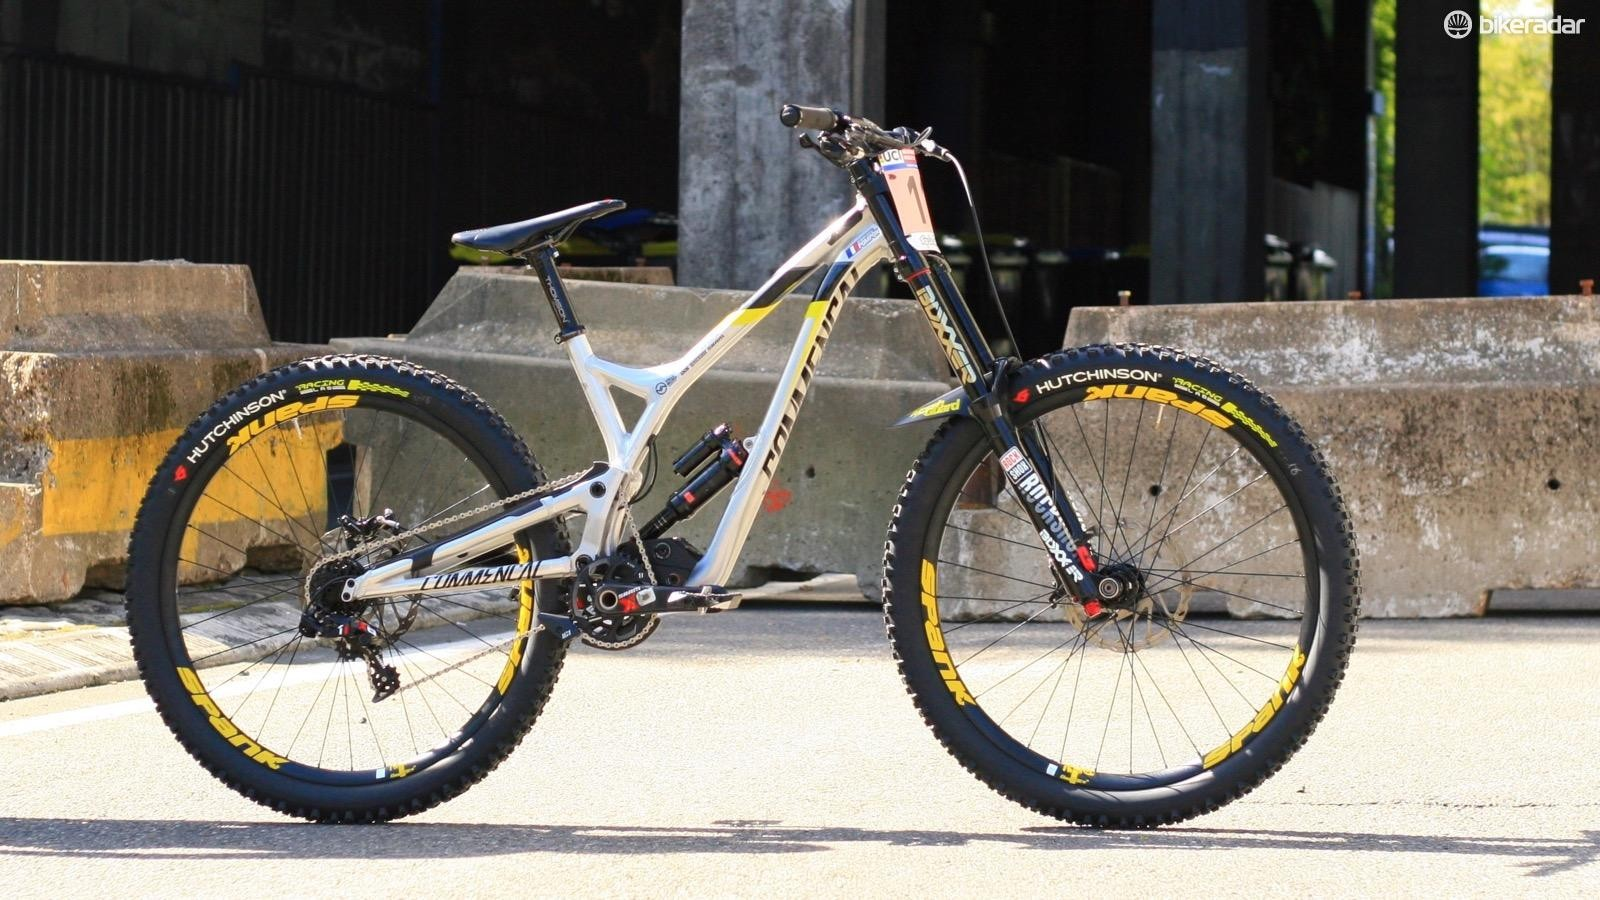 Myrim Nicole's Commencal Supreme DH is set for the Lourdes World Cup